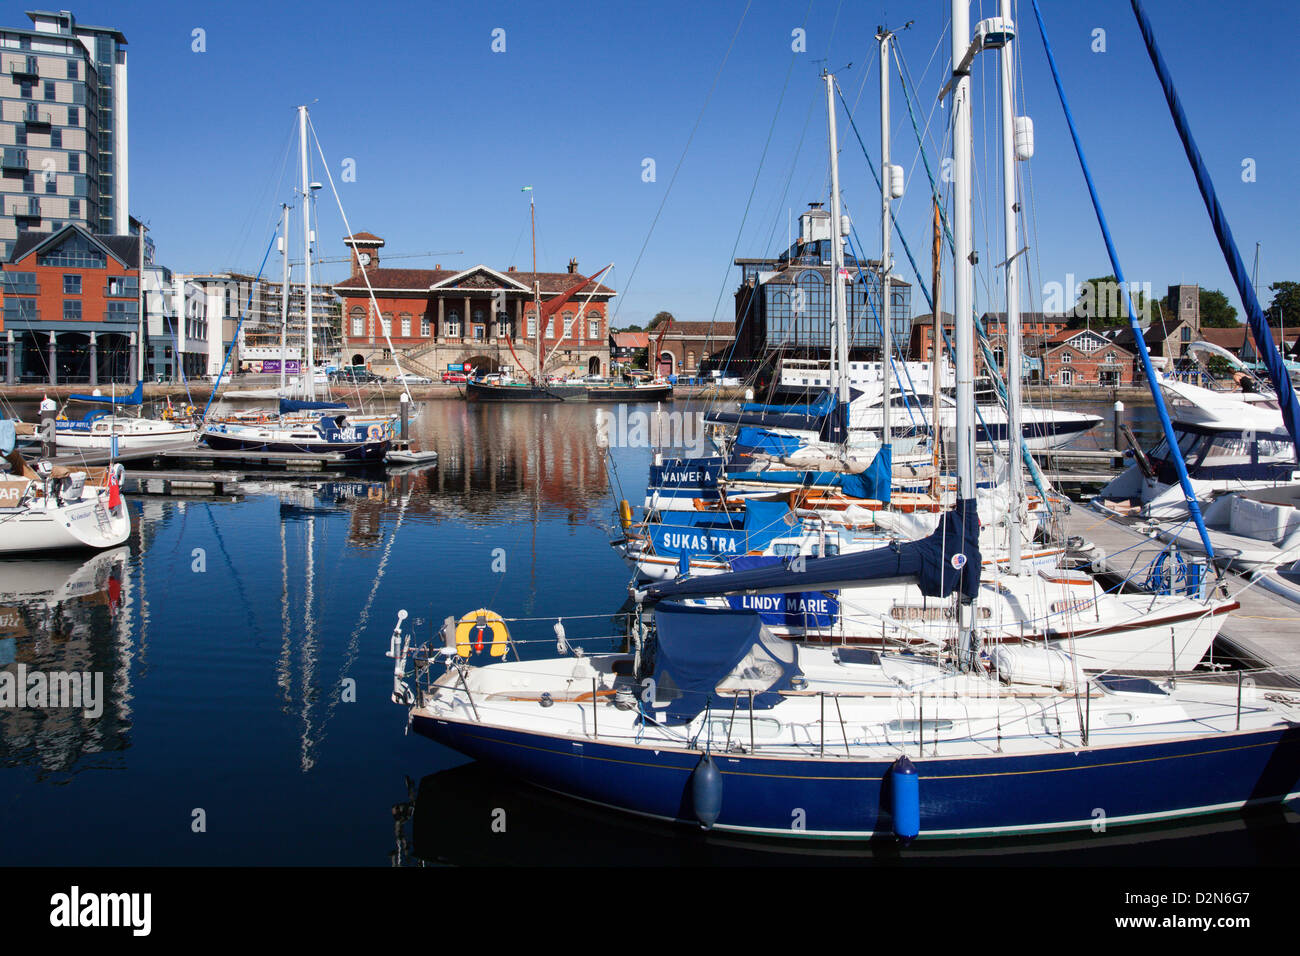 Yachts at Ipswich Haven Marina and the Old Custom House, Ipswich, Suffolk, England, United Kingdom, Europe - Stock Image